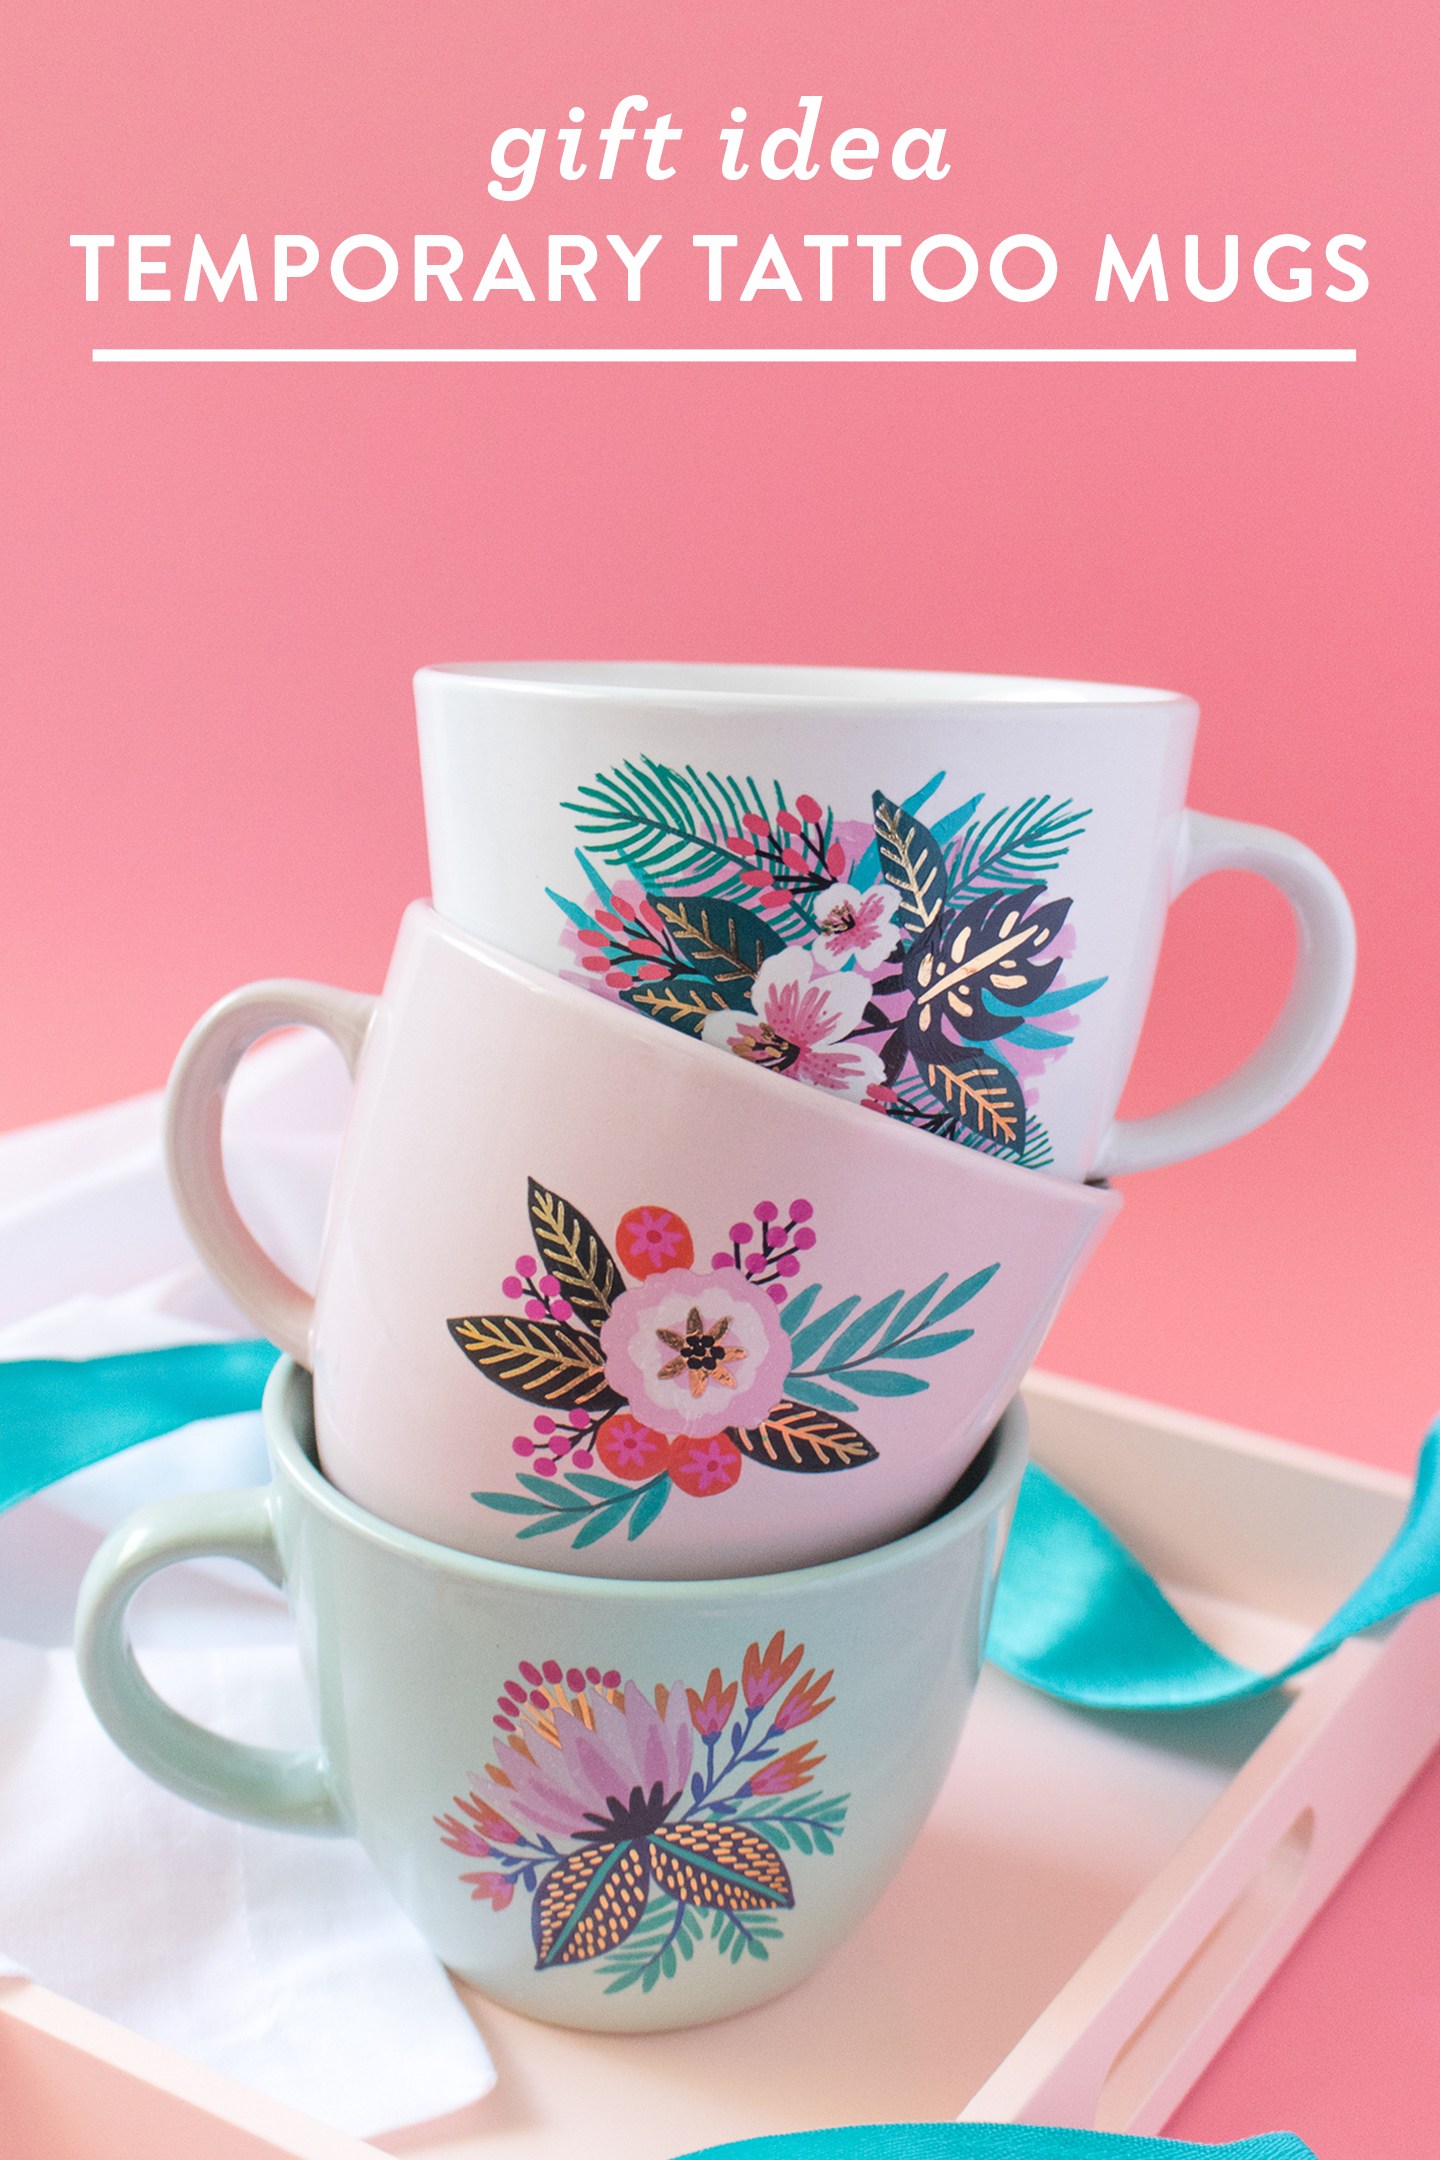 Photo of stacked floral mugs decorated with temporary tattoos